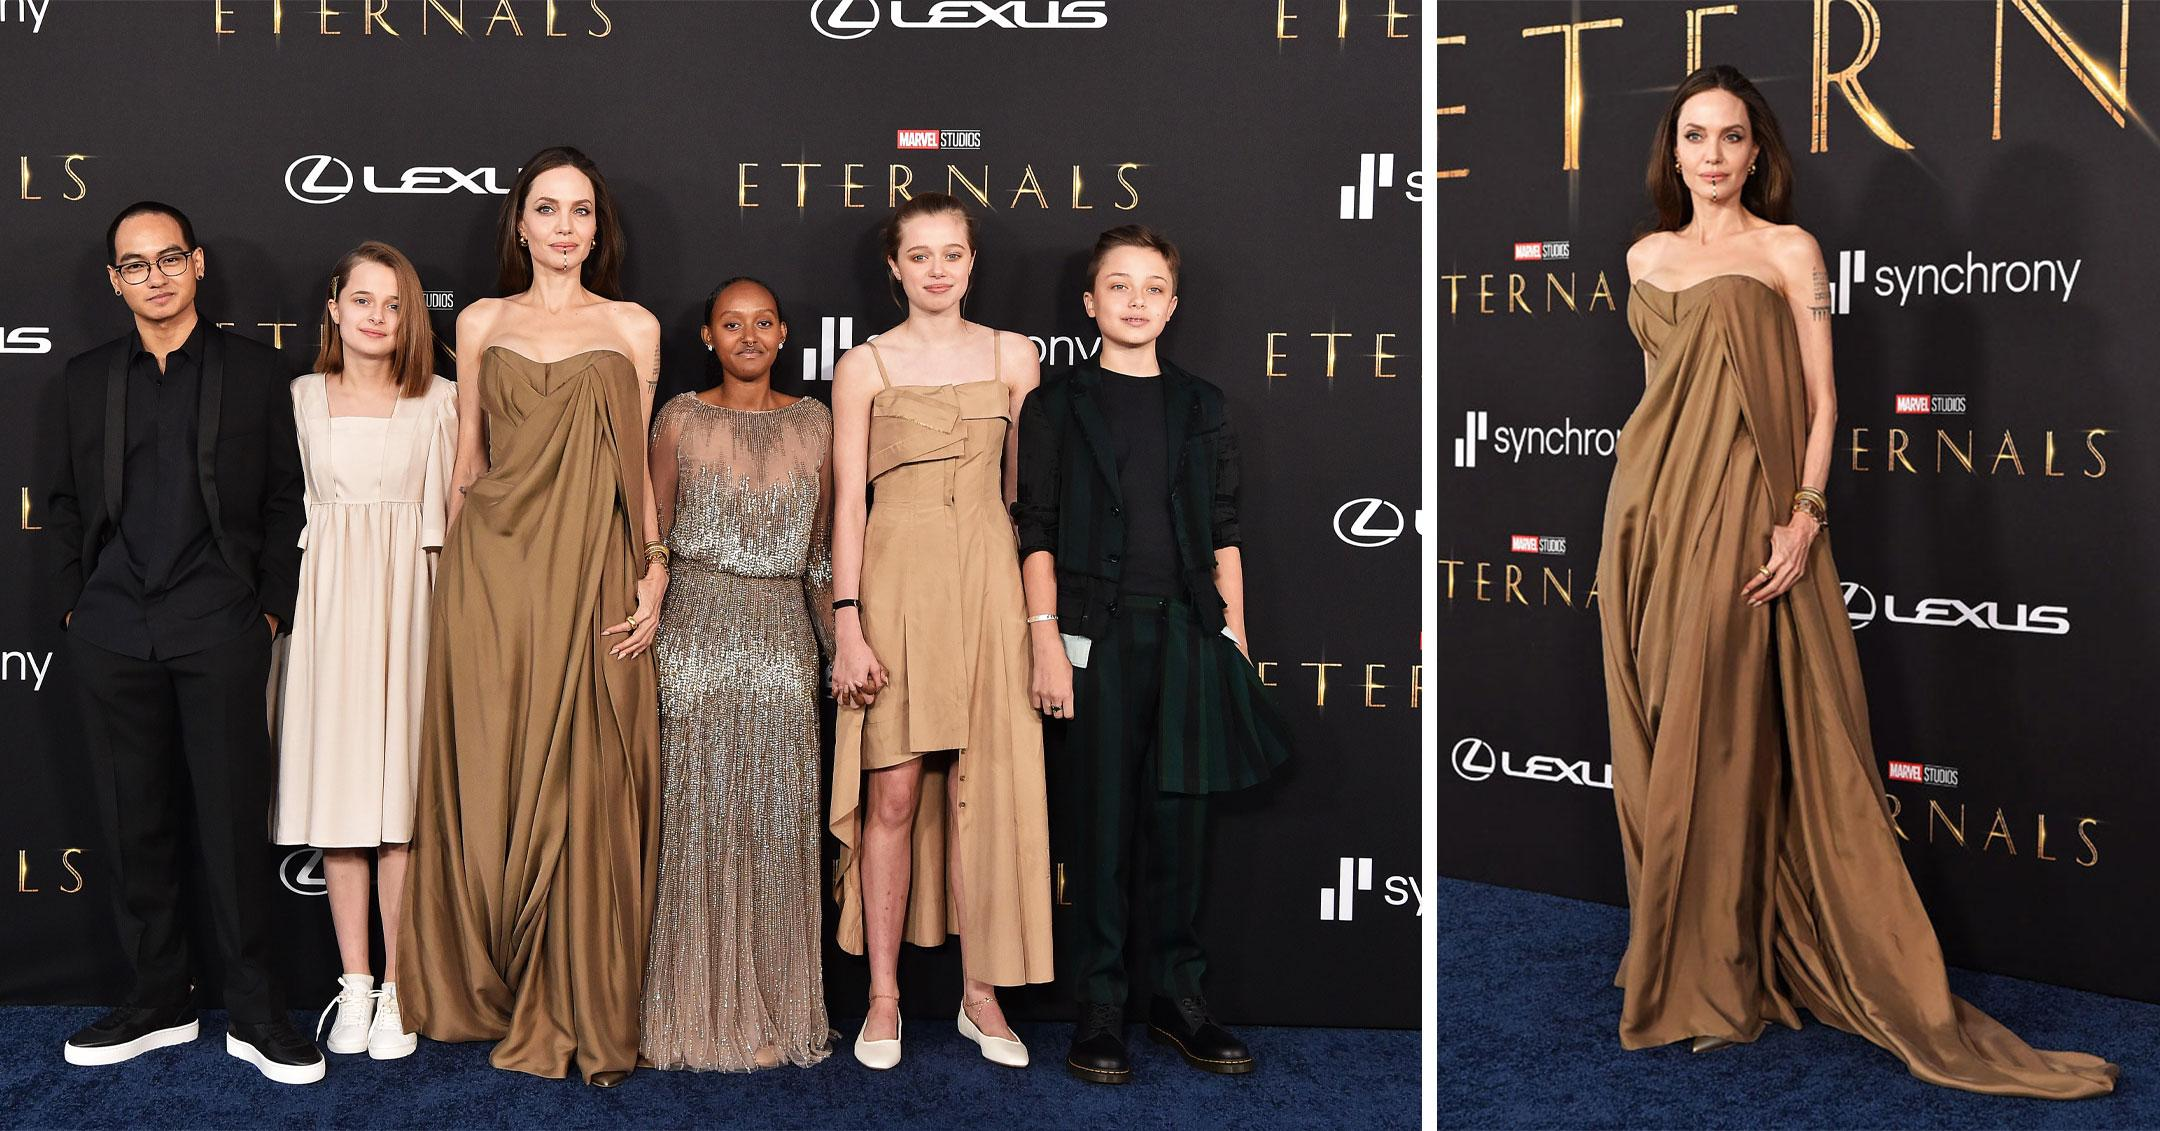 angelina jolie with her kids at premiere of the eternals pp